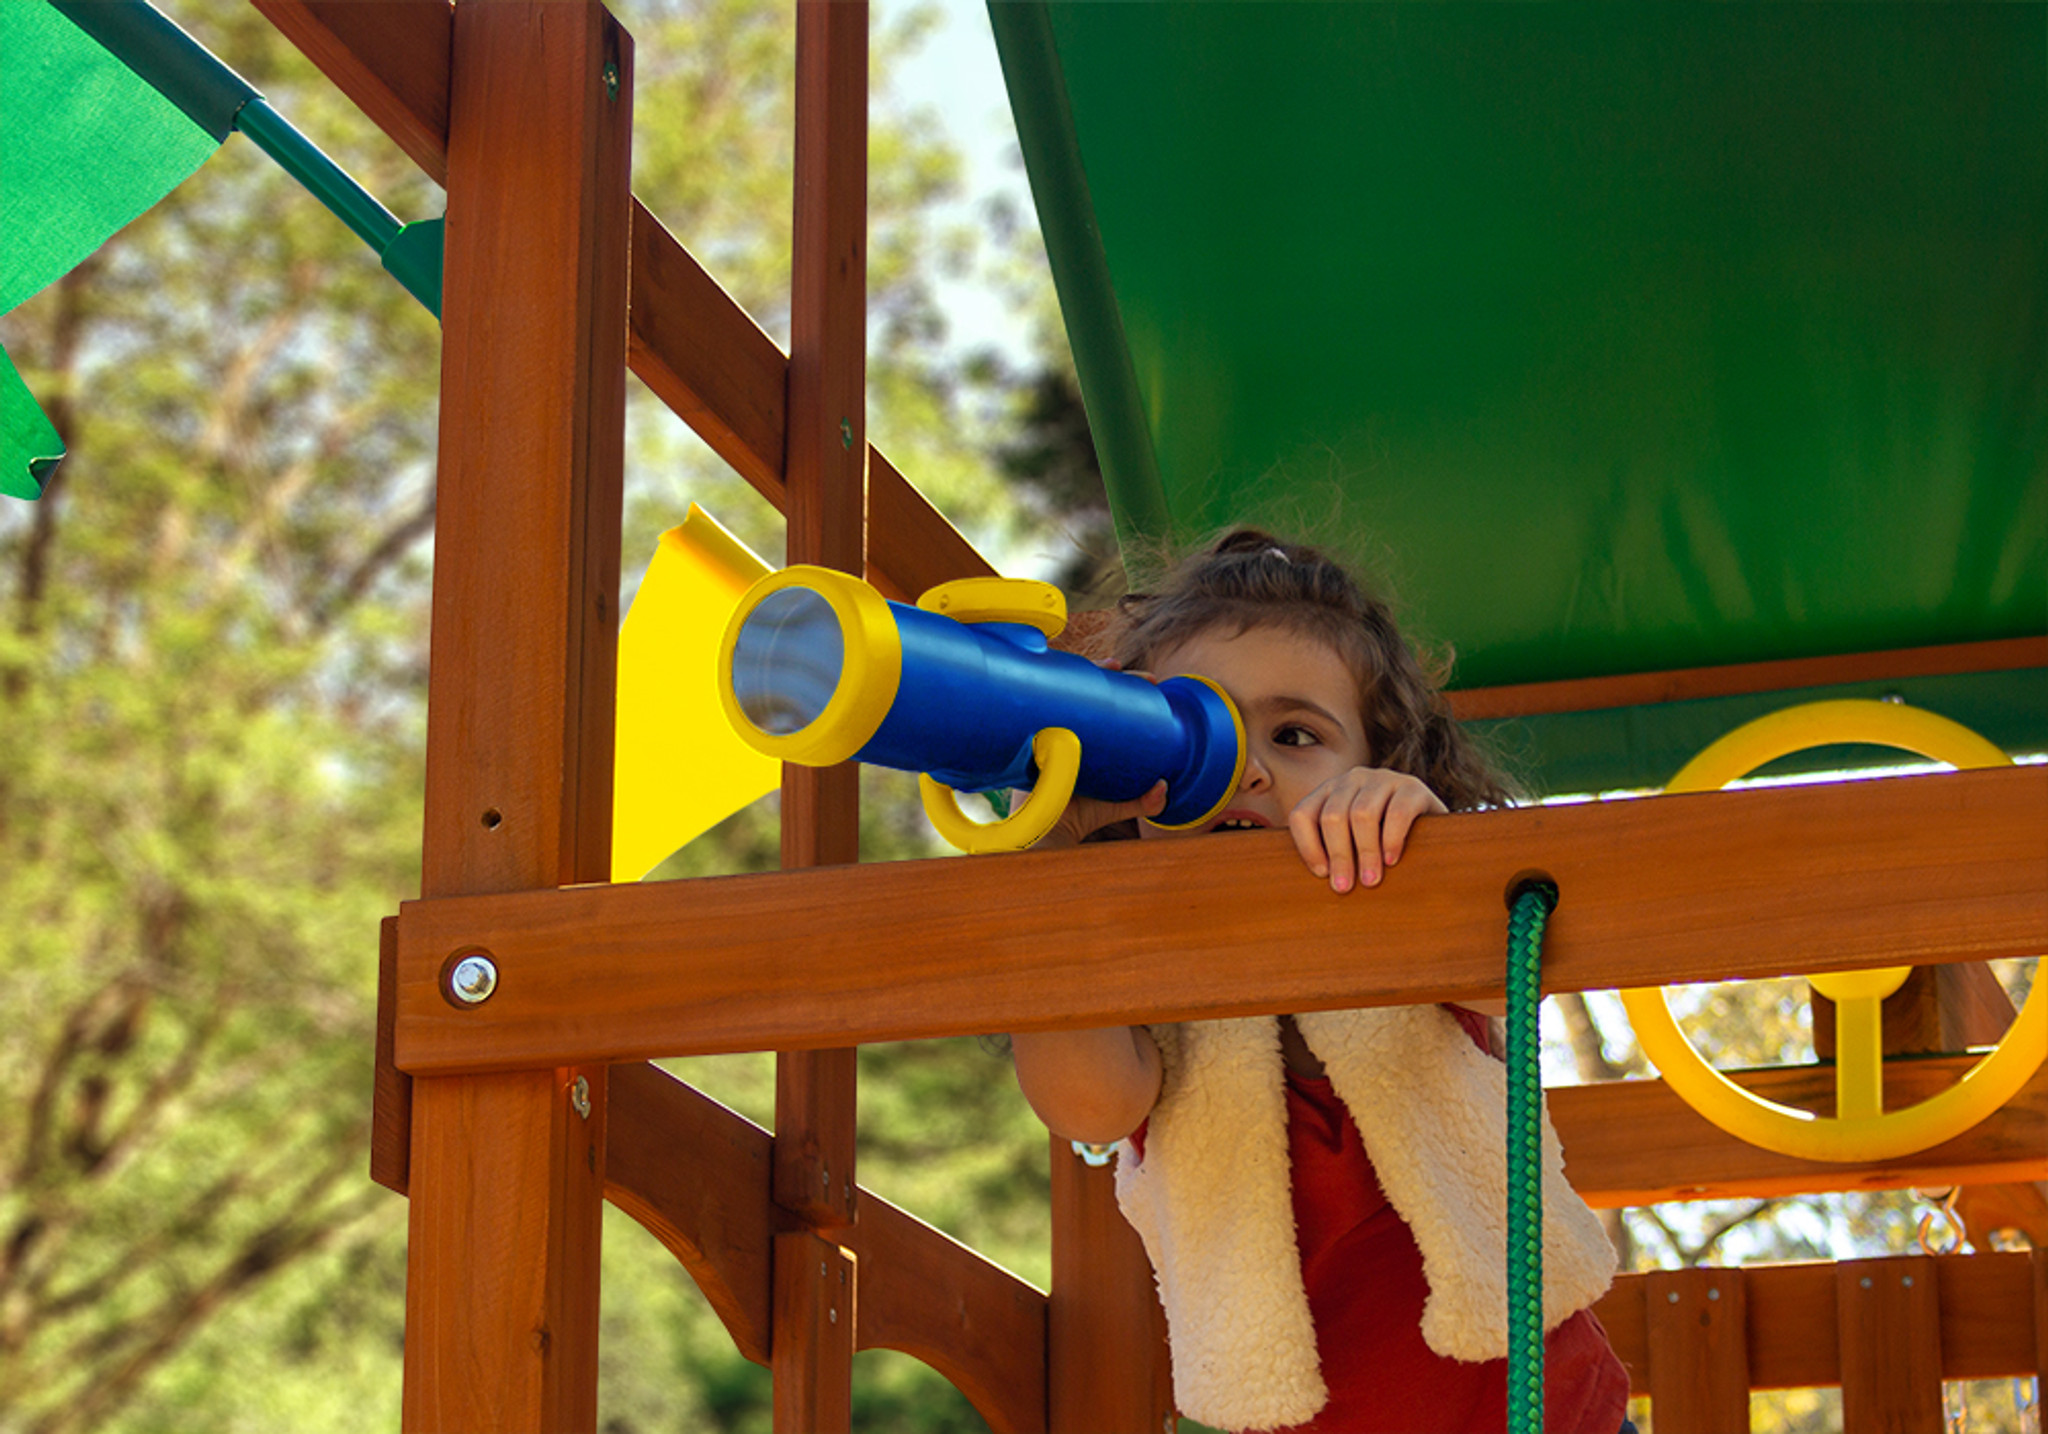 Lots of fun straight ahead with the Telescope with Compass from PlayNation Play Systems.